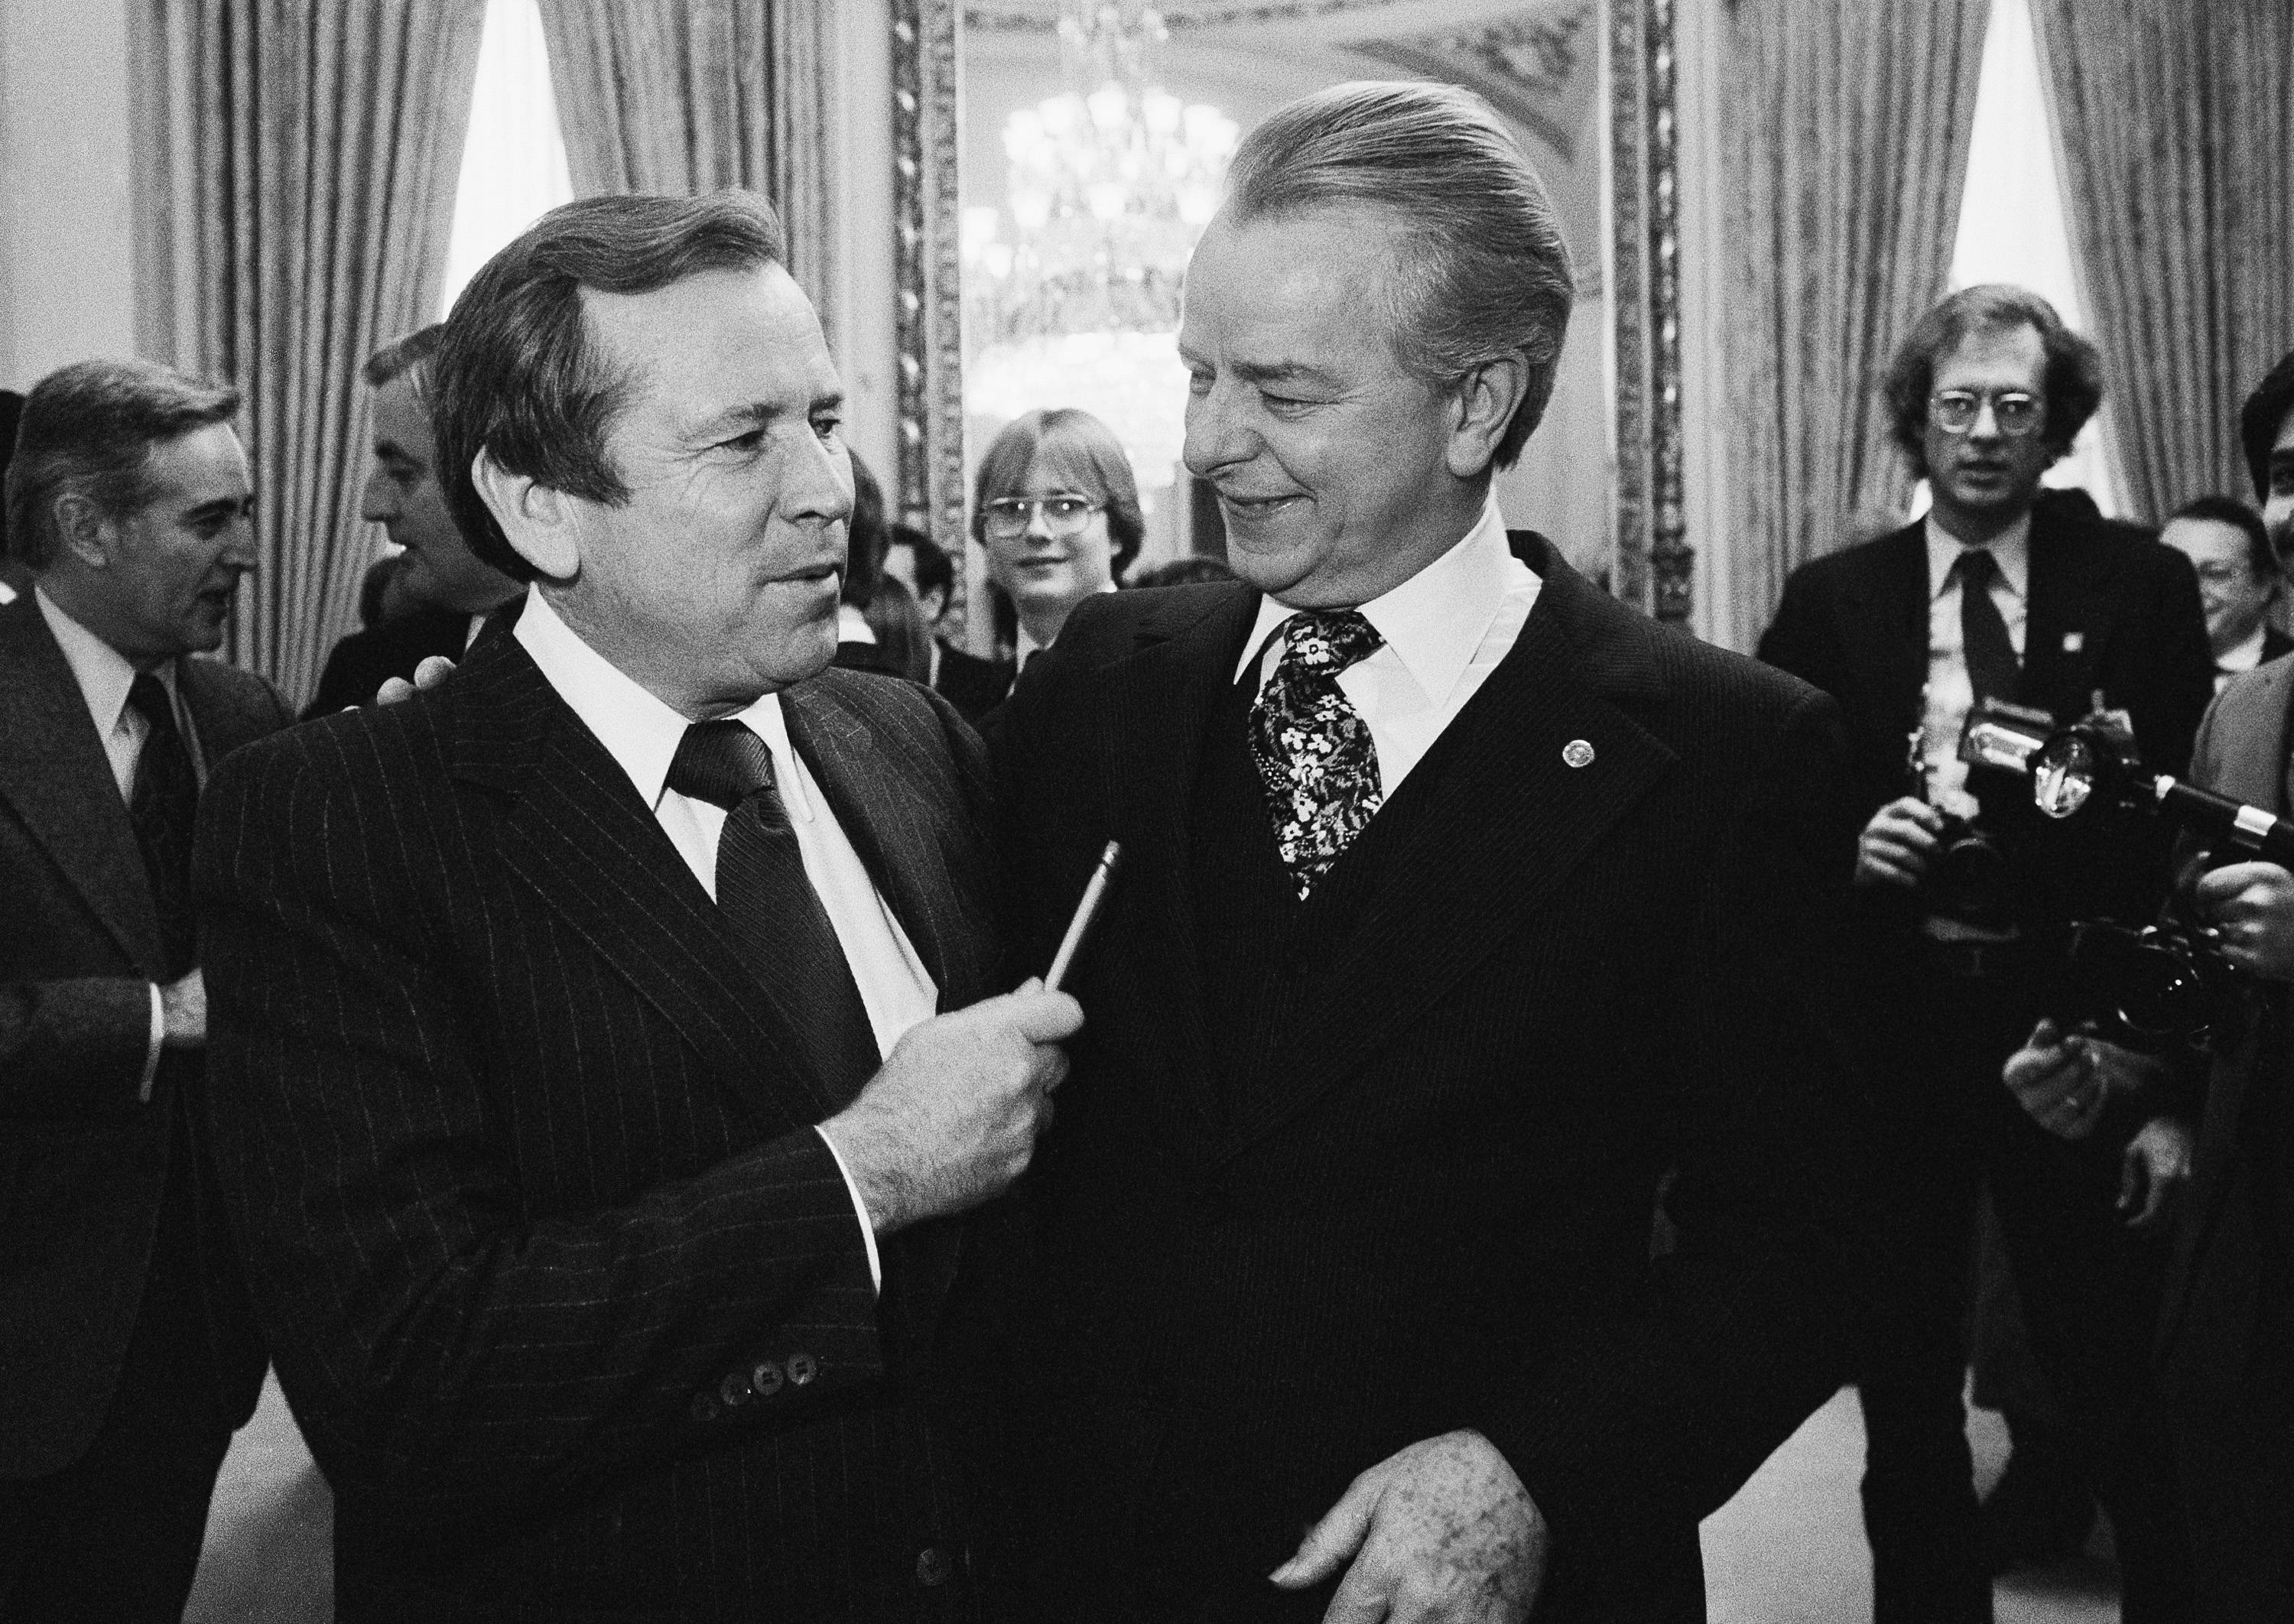 Senate Majority Leader Robert Byrd of West Virginia right, talking to the man who will replace him, Sen. Howard Baker, a Tennessee Republican, on Capitol Hill in Washington. Baker, who asked what President Richard Nixon knew about Watergate, has died. He was 88. Baker, a Republican, served 18 years in the Senate. He earned the respect of Republicans and Democrats alike and rose to the post of majority leader. He served as White House chief of staff at the end of the Reagan administration and was U.S. ambassador to Japan during President George W. Bush's first term.